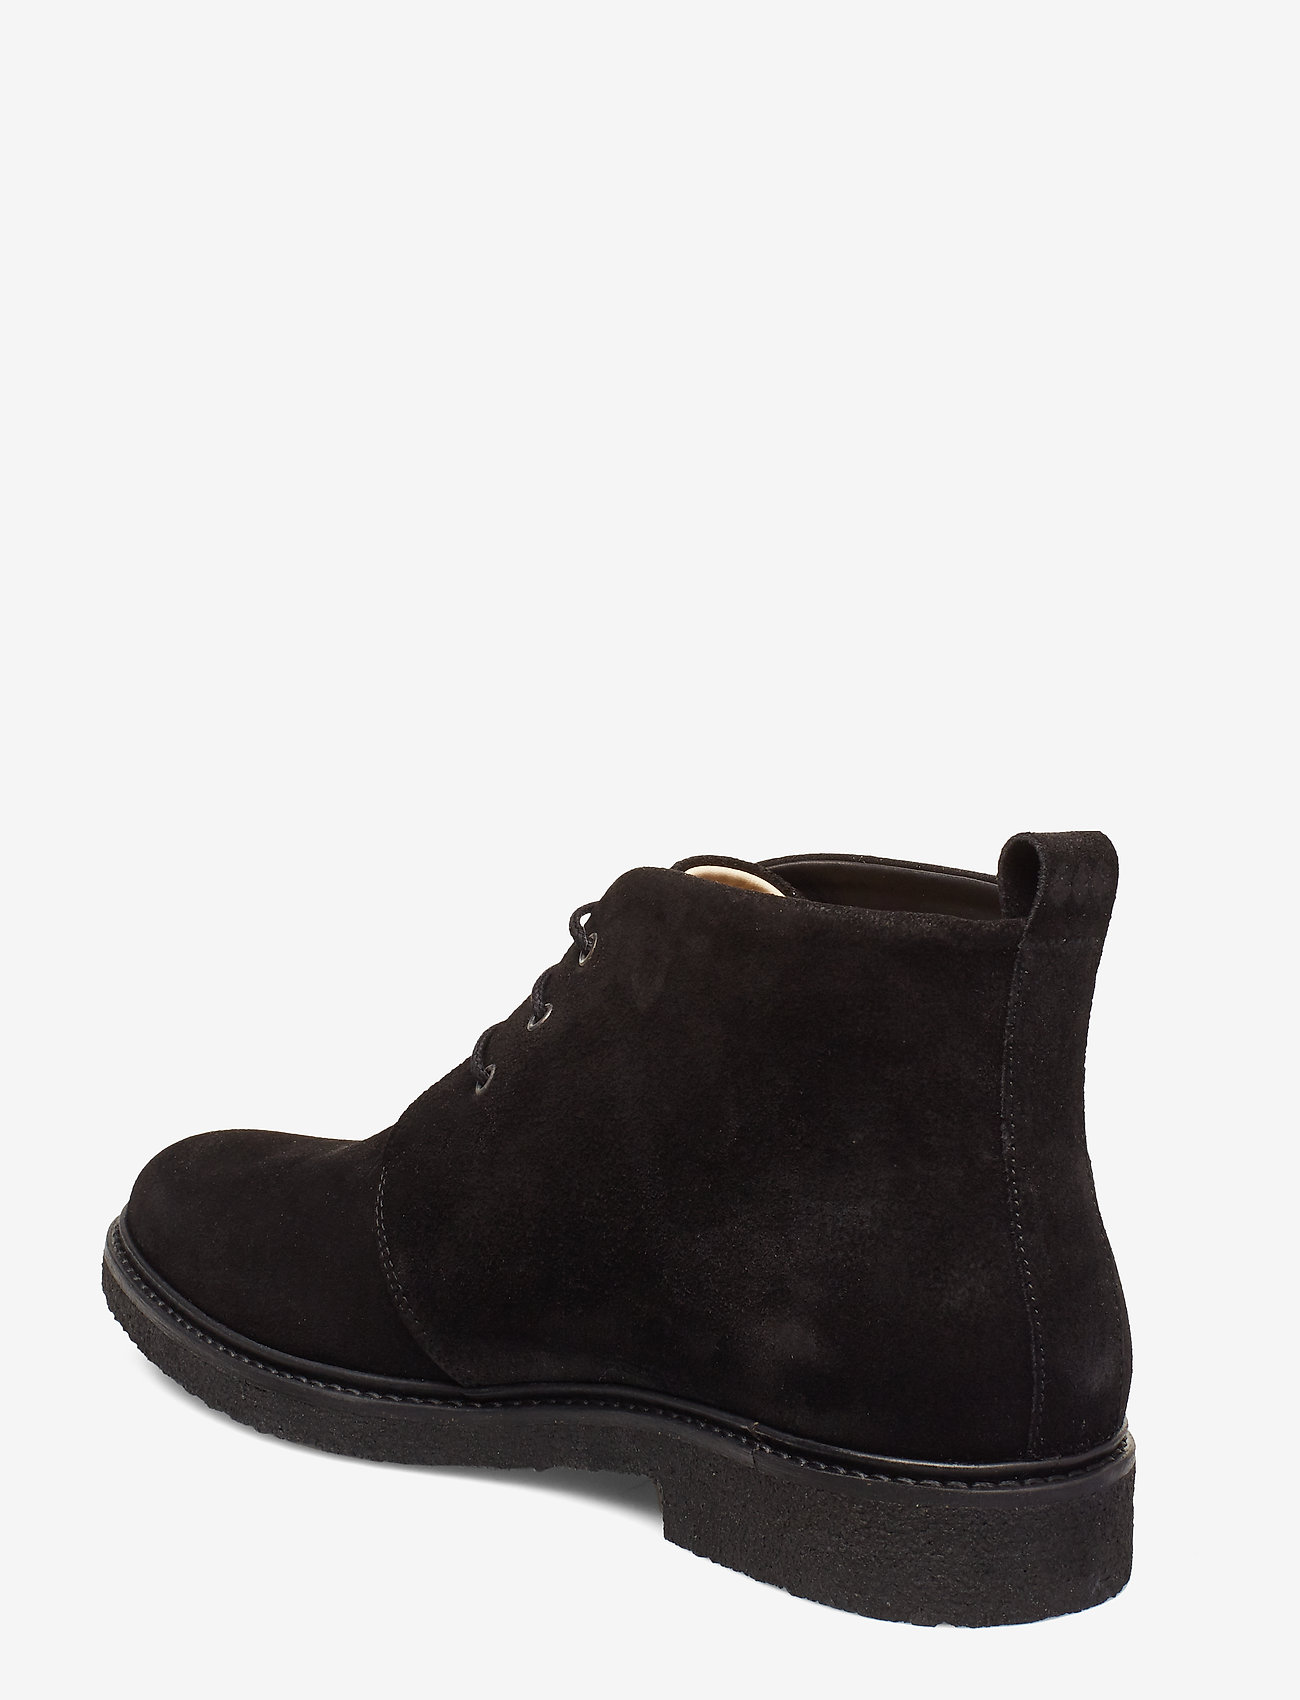 Cast Crepe Chukka Suede (Black) - Royal RepubliQ